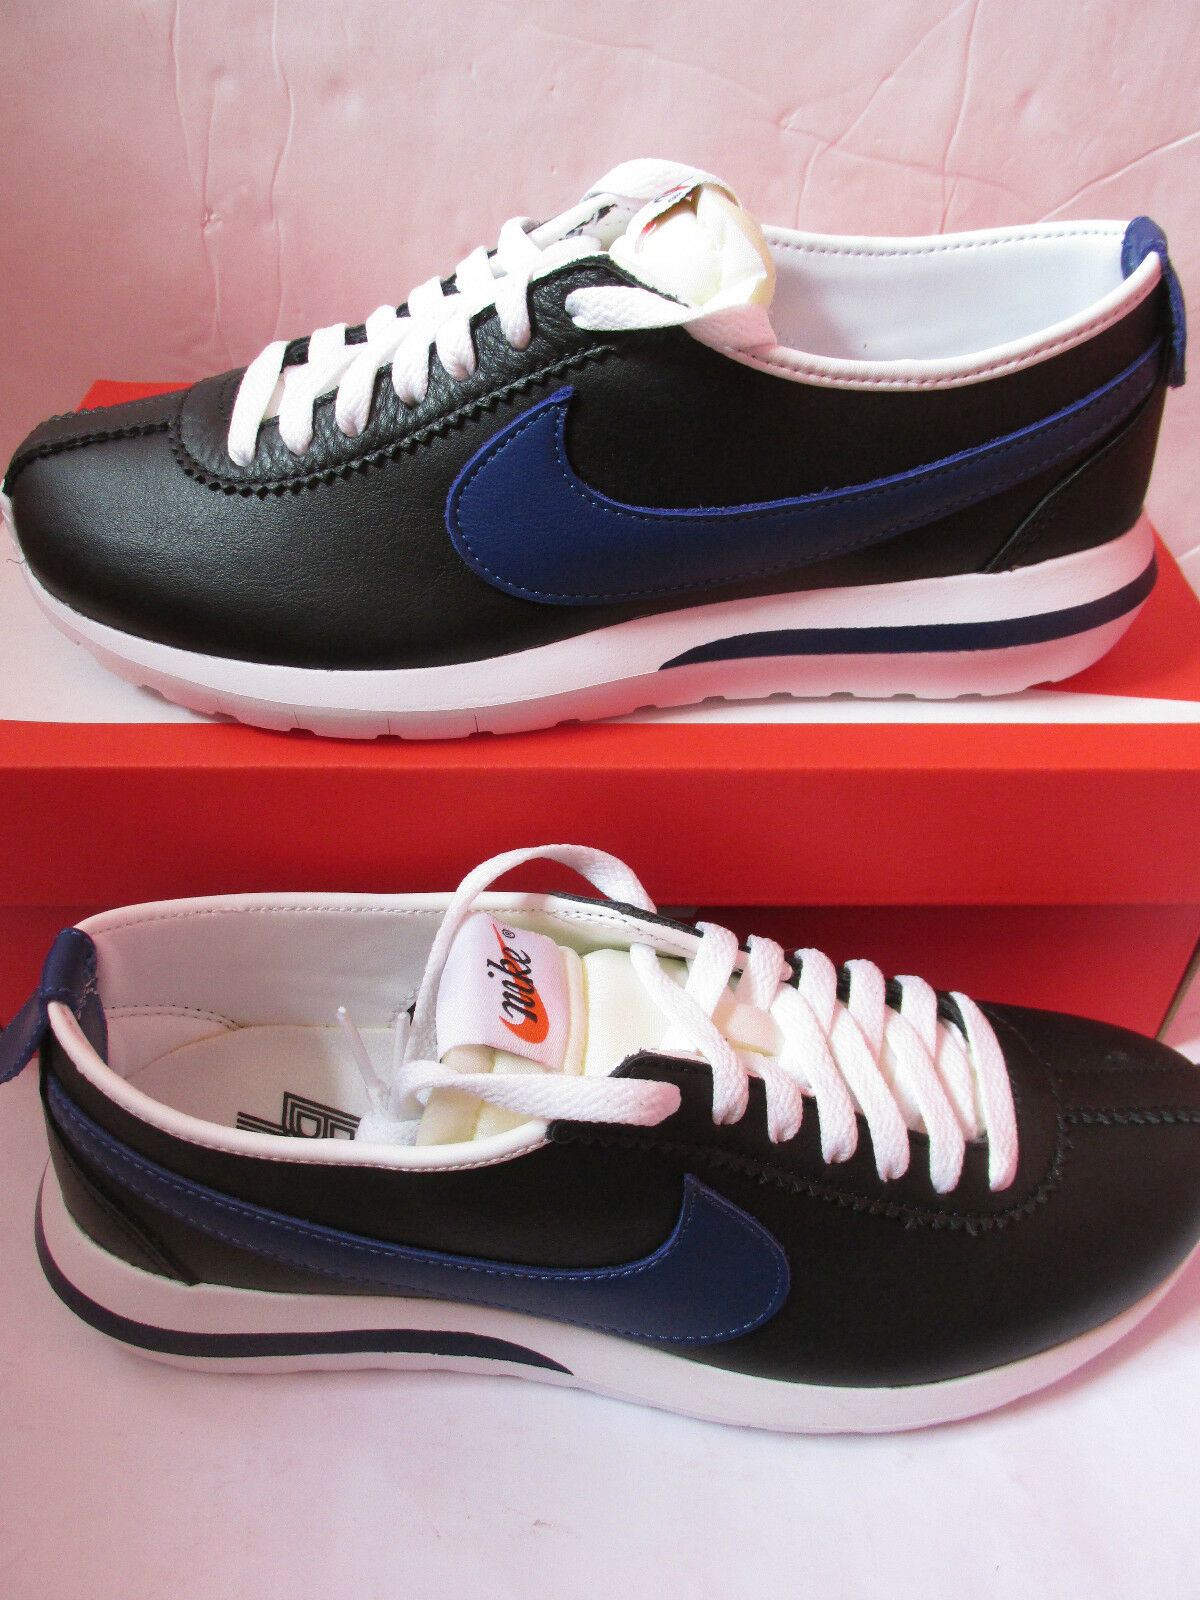 Comfortable and good-looking nike roshe cortez NM LTR mens trainers 826332 004 sneakers shoes